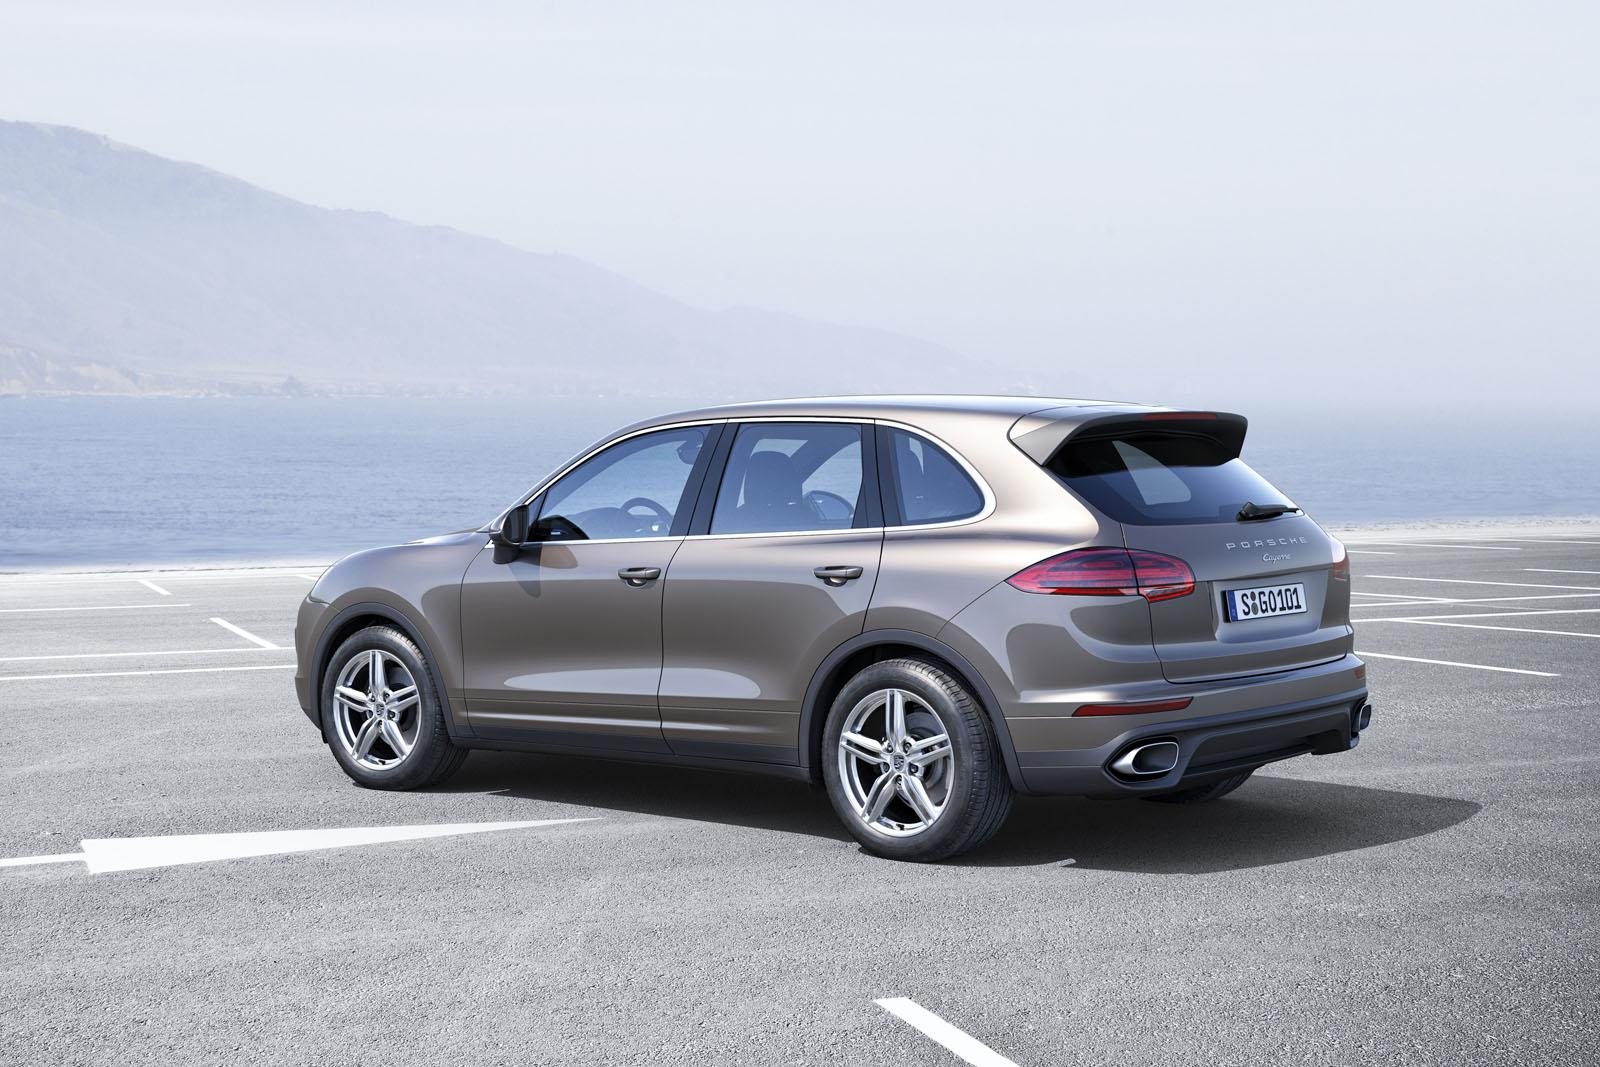 2015 porsche cayenne gts downsizes to a twin turbo v6. Black Bedroom Furniture Sets. Home Design Ideas